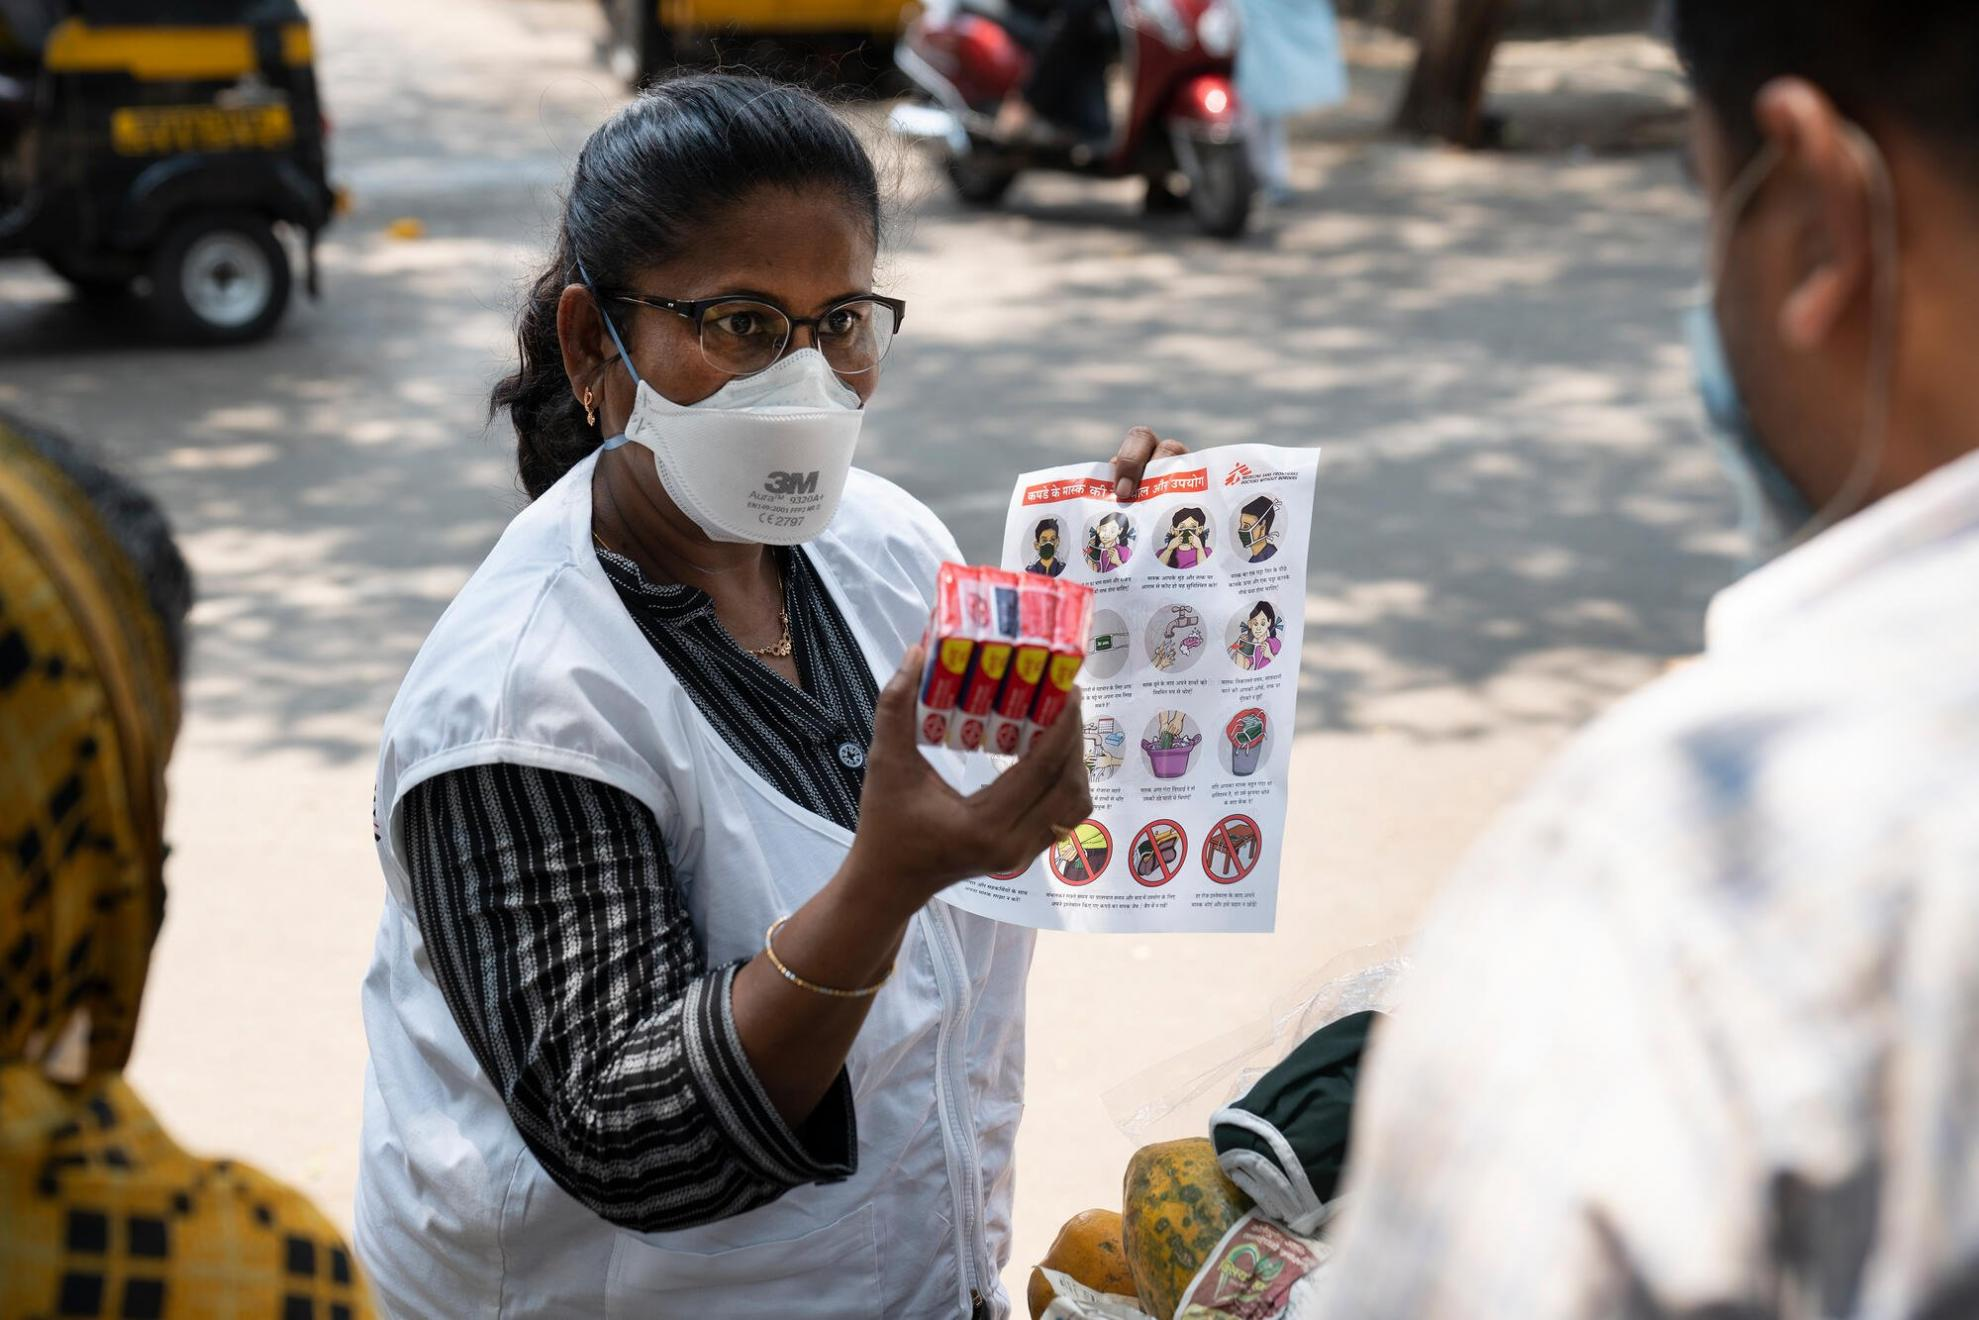 An MSF health promoter handing out supplies in Mumbai